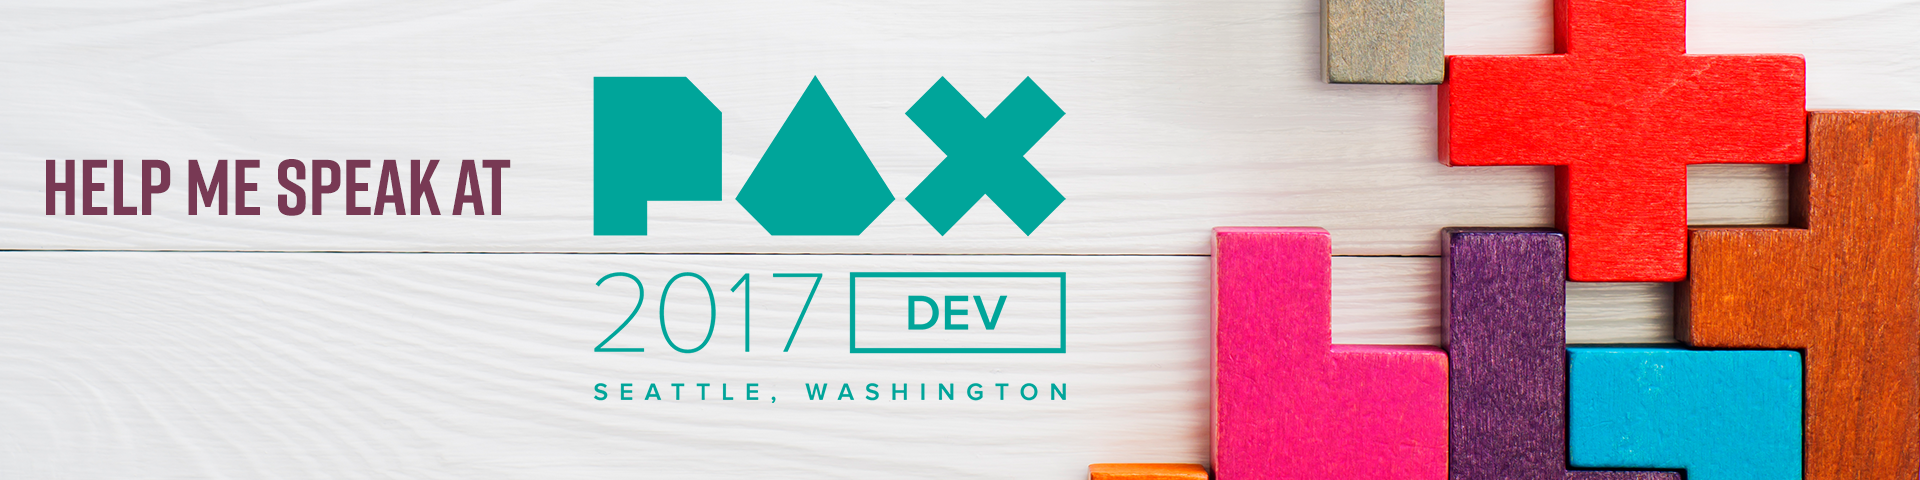 PAX DEV | Help NinJaSistah Speak At PAX DEV